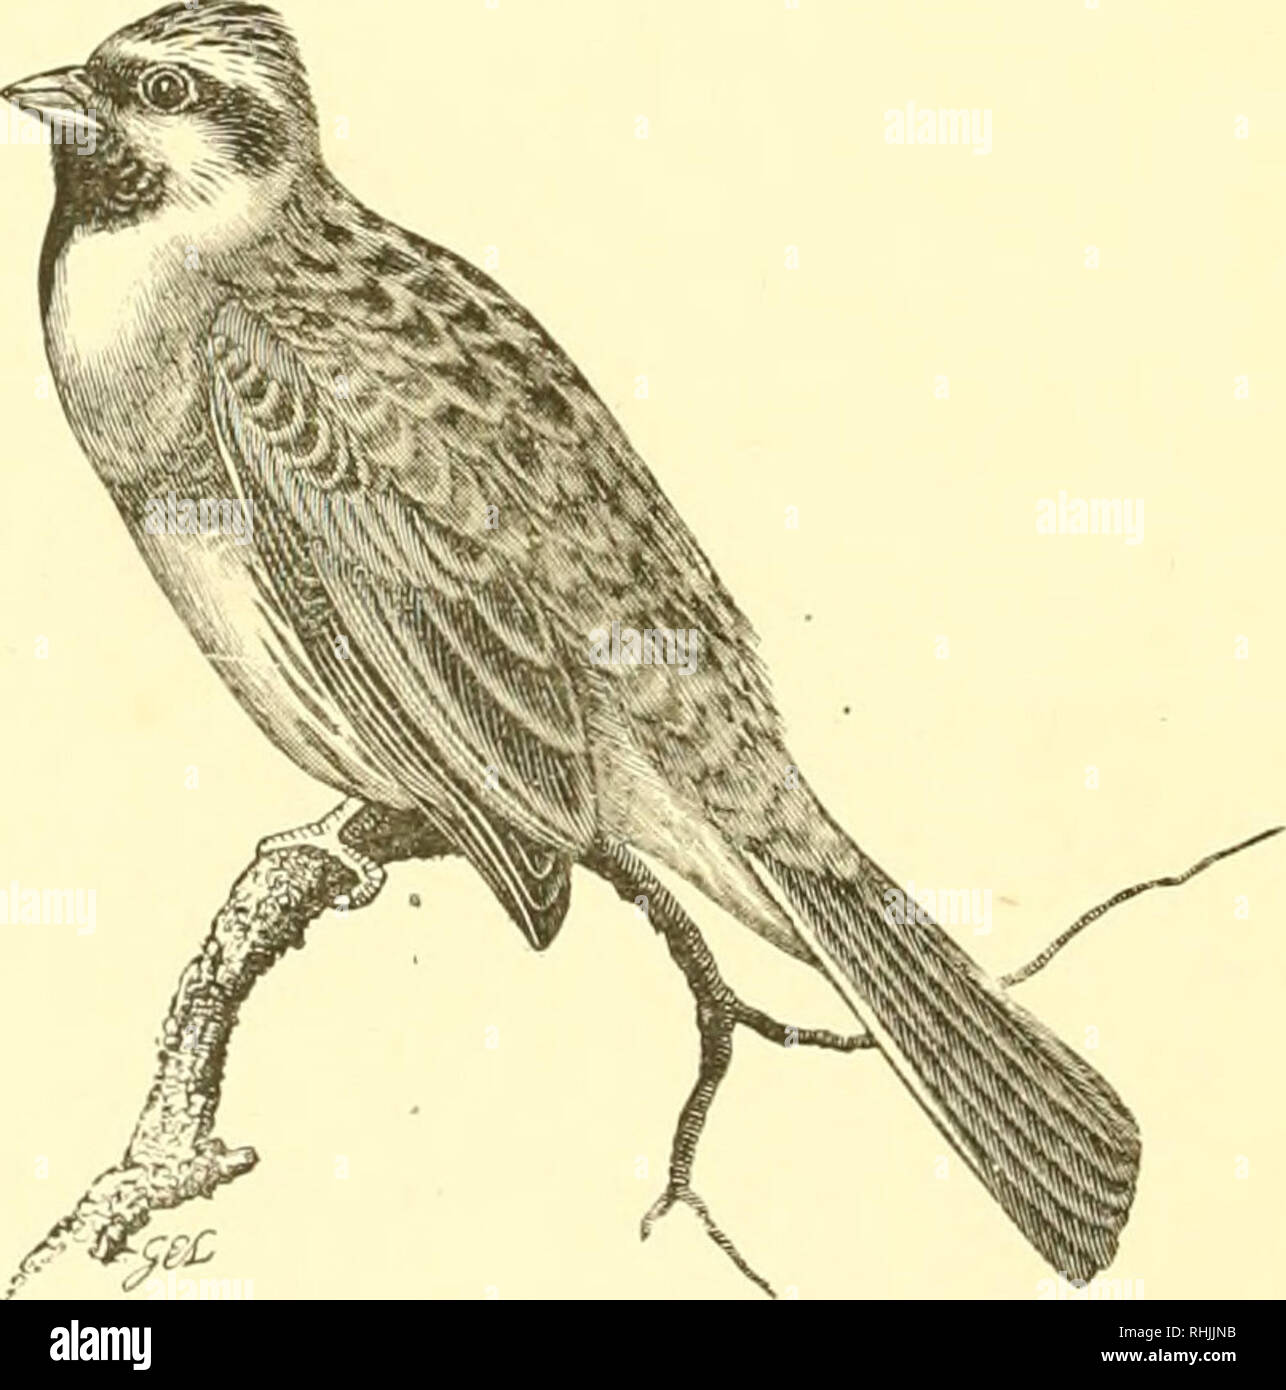 . The birds of Dorsetshire; a contribution to the natural history of the county. Birds. 42 THE BIRDS OF DORSET. YELLOWHAMMEK. Emheriza citrinelJa, L. Yarrell, ii. p. 43 ; Ilarting, p. 26; Dresser, iv. p. 171; Seehohn, ii. p. 160; Ibis List, p. 60; Pulteneifs List, p. 11. A well-known resident, flocking in winter, when it may often be found in the rickyards with Sparrows, Greenfinches, and Chaffinches. CIEL BUNTING. Emheriza cirlus, L. Yarrell, ii. p. 50; Harting, p. 26; Dresser, iv. p. 177 ; Seebohm, ii. p. 156; Ibis List, p. 60.. The Cirl Bunting is resident, and not uncommon in Dorsetshire i - Stock Image